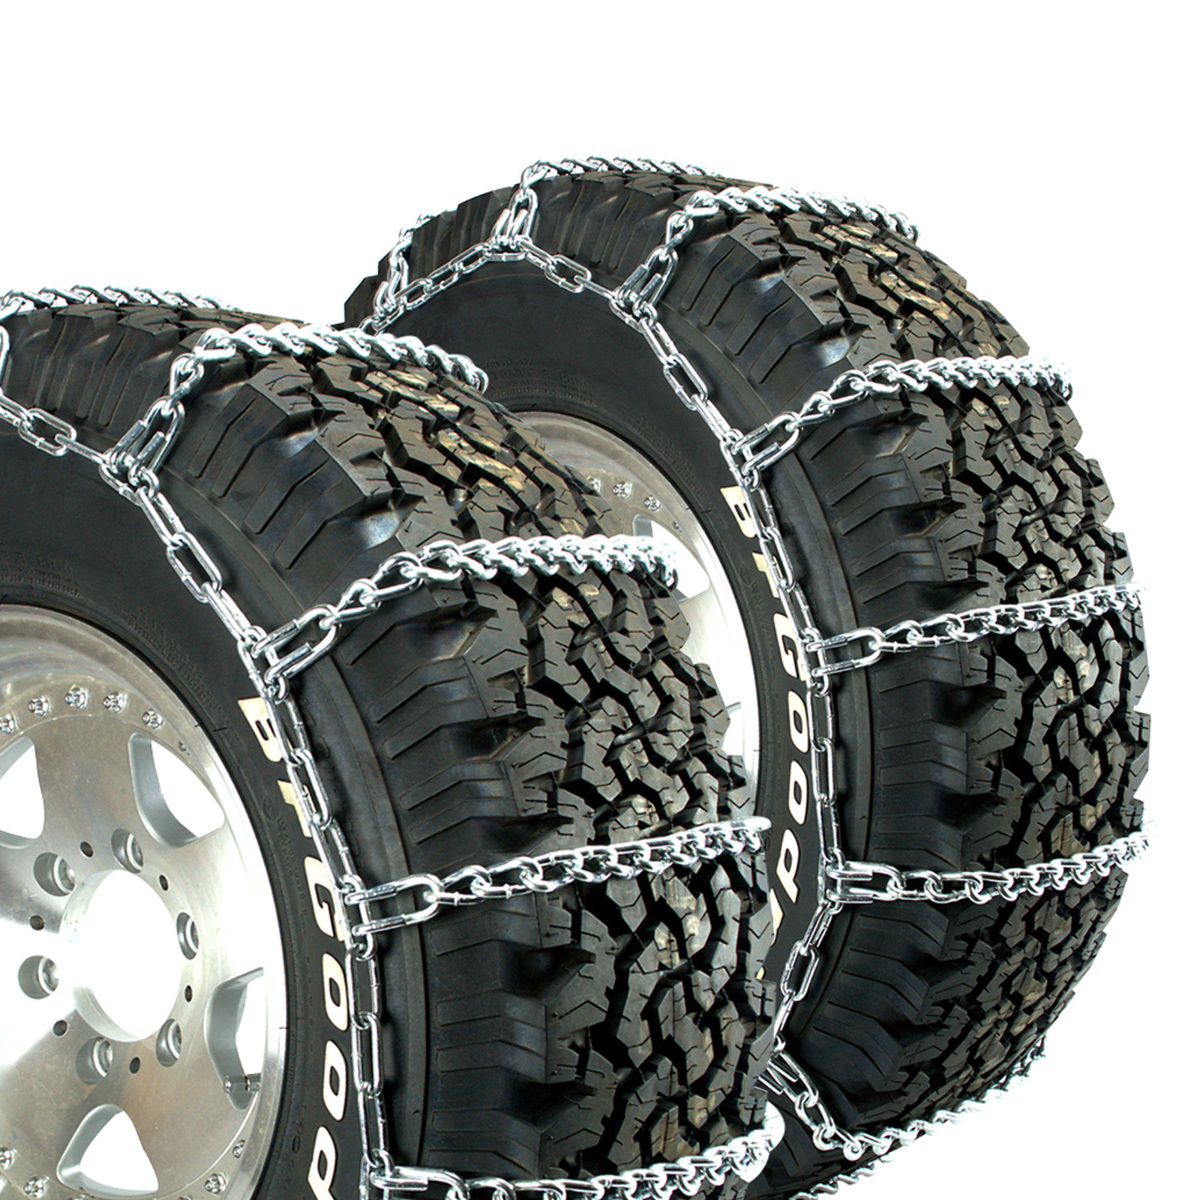 Titan Truck V-Bar Link Tire Chains Dual CAM On Road Ice//Snow 5.5mm 225//75-16